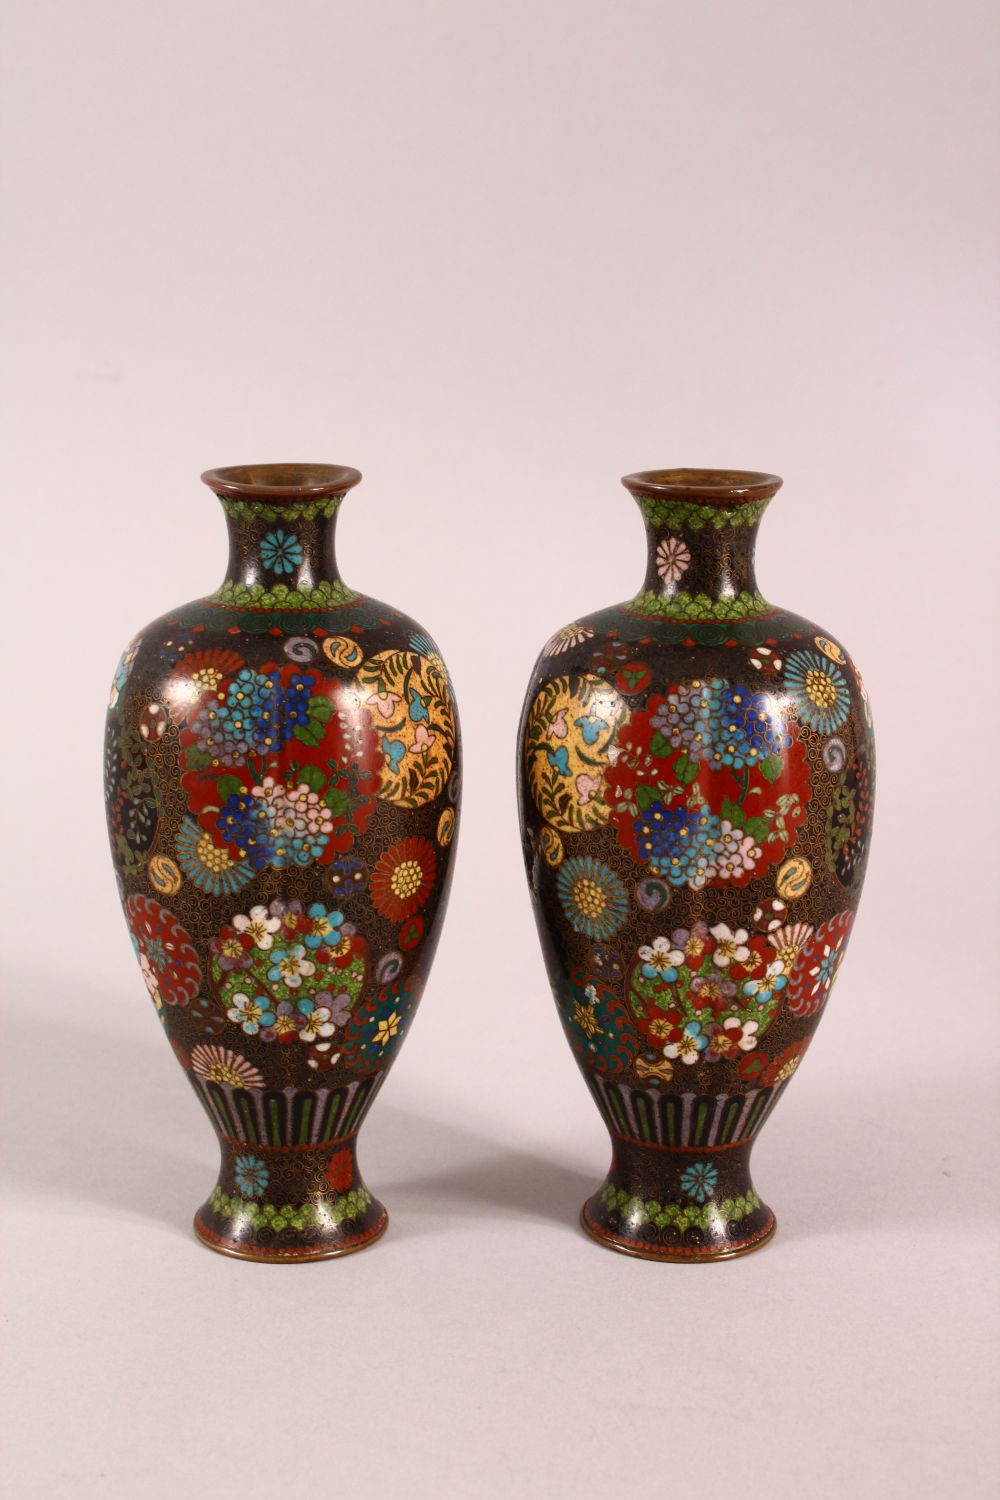 A PAIR OF SMALL CLOISONNE VASES OF RIBBED BALUSTER FORM, decorated with roundels of flowers, 15cm - Image 3 of 6